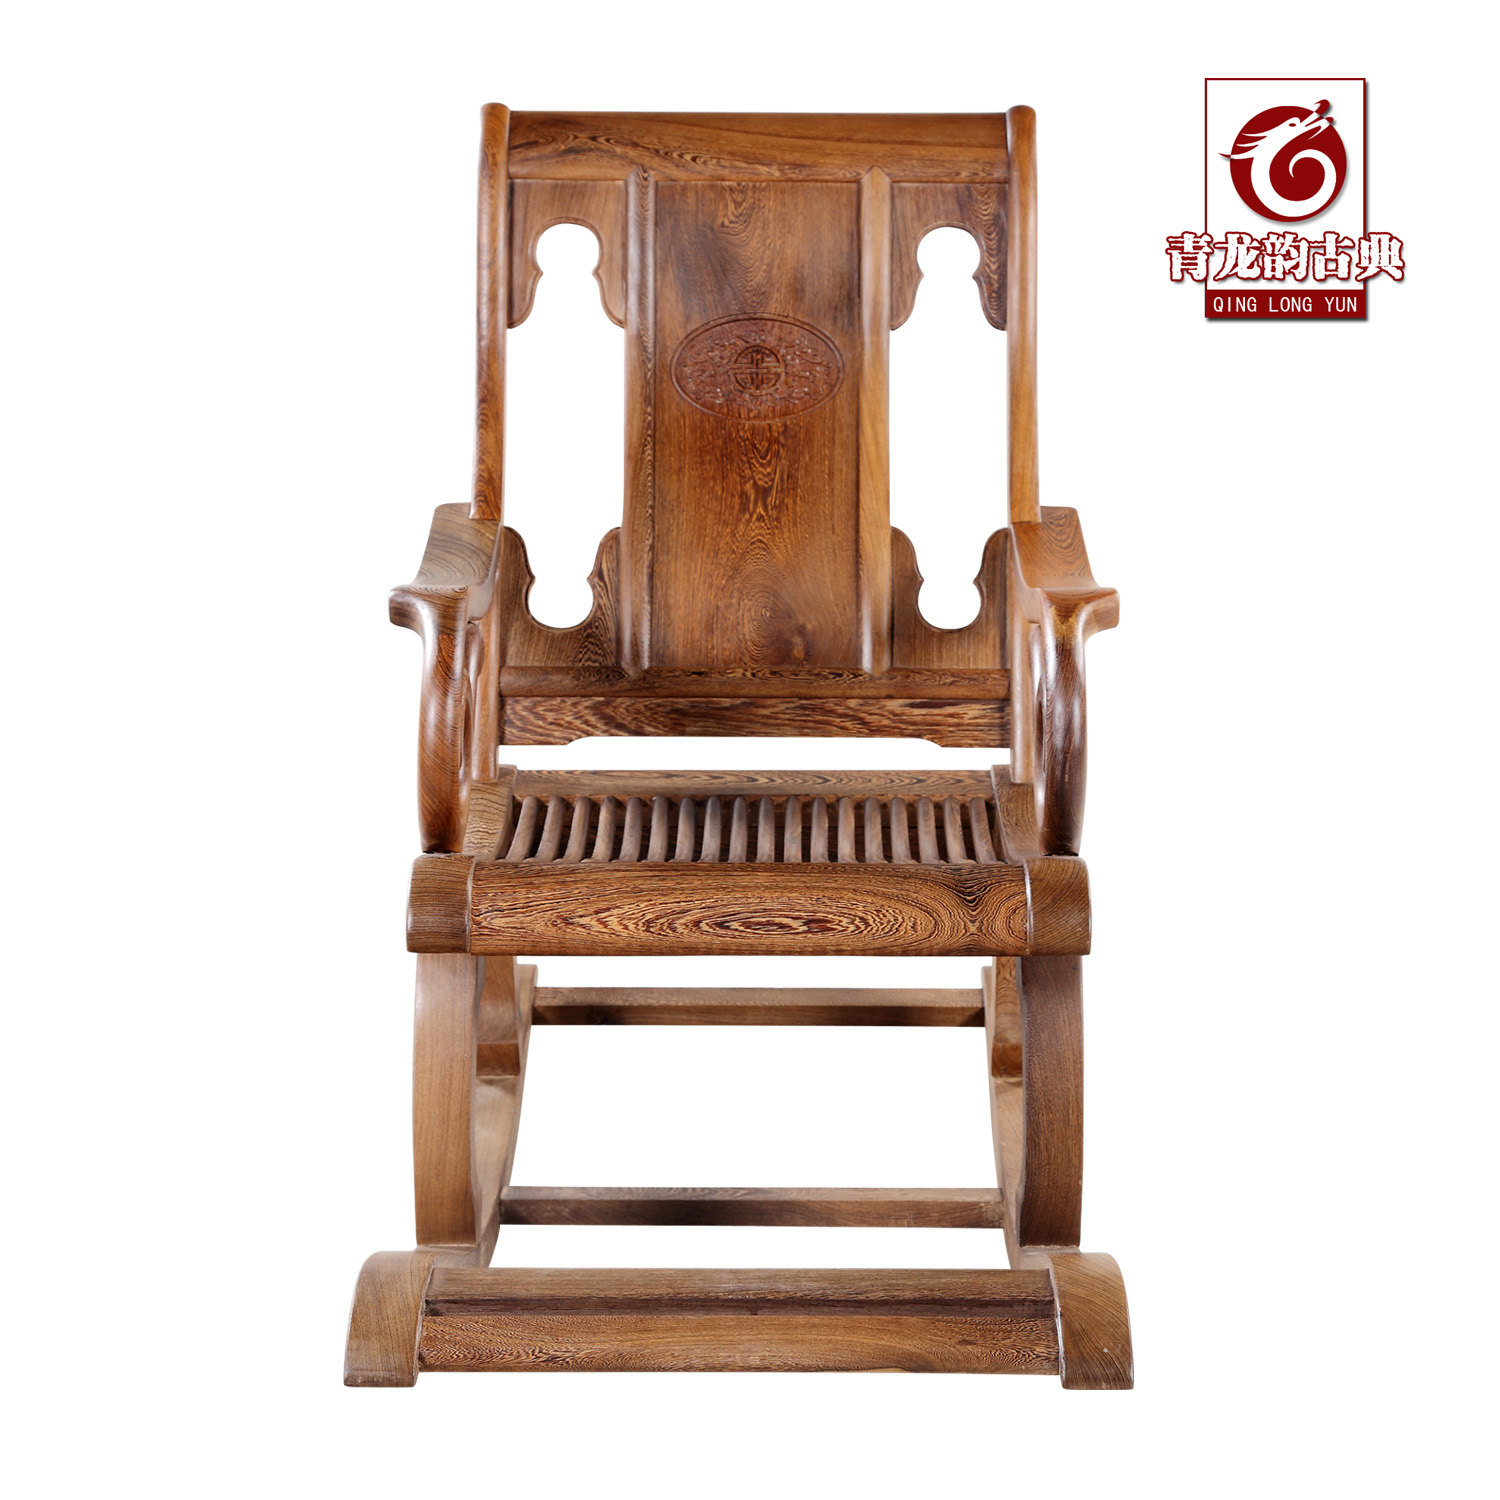 Chaise Rocking Chair Us 1704 Wenge Rocking Chair Factory Direct Chinese Rosewood Furniture In Old Wood Chaise Lounge Happy Cheap In Chaise Lounge From Furniture On